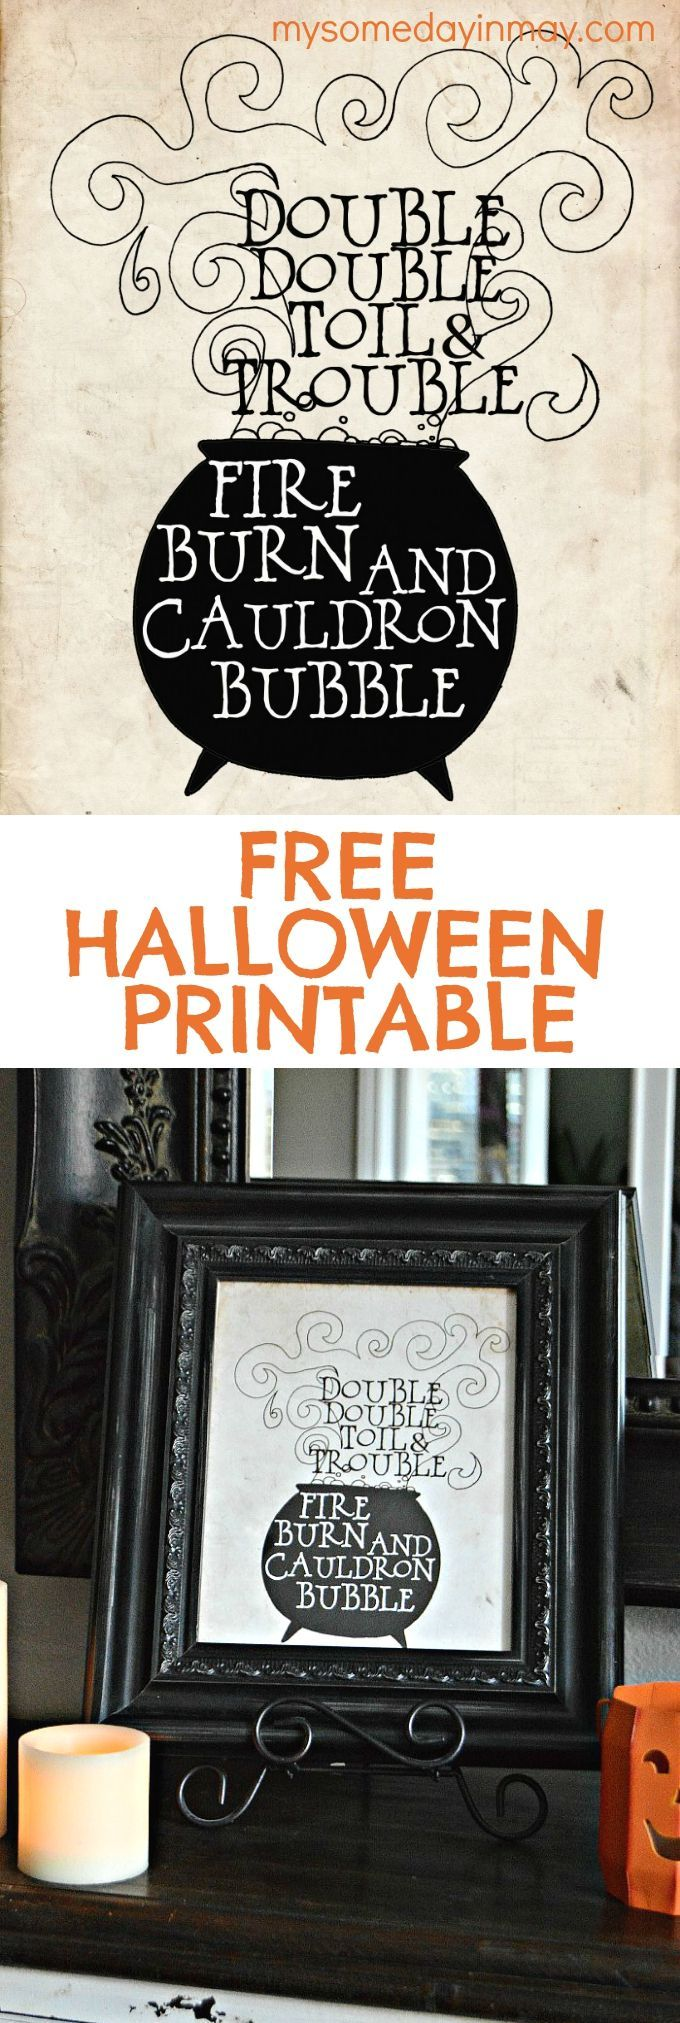 Perfect Free Printable for Halloween decor!